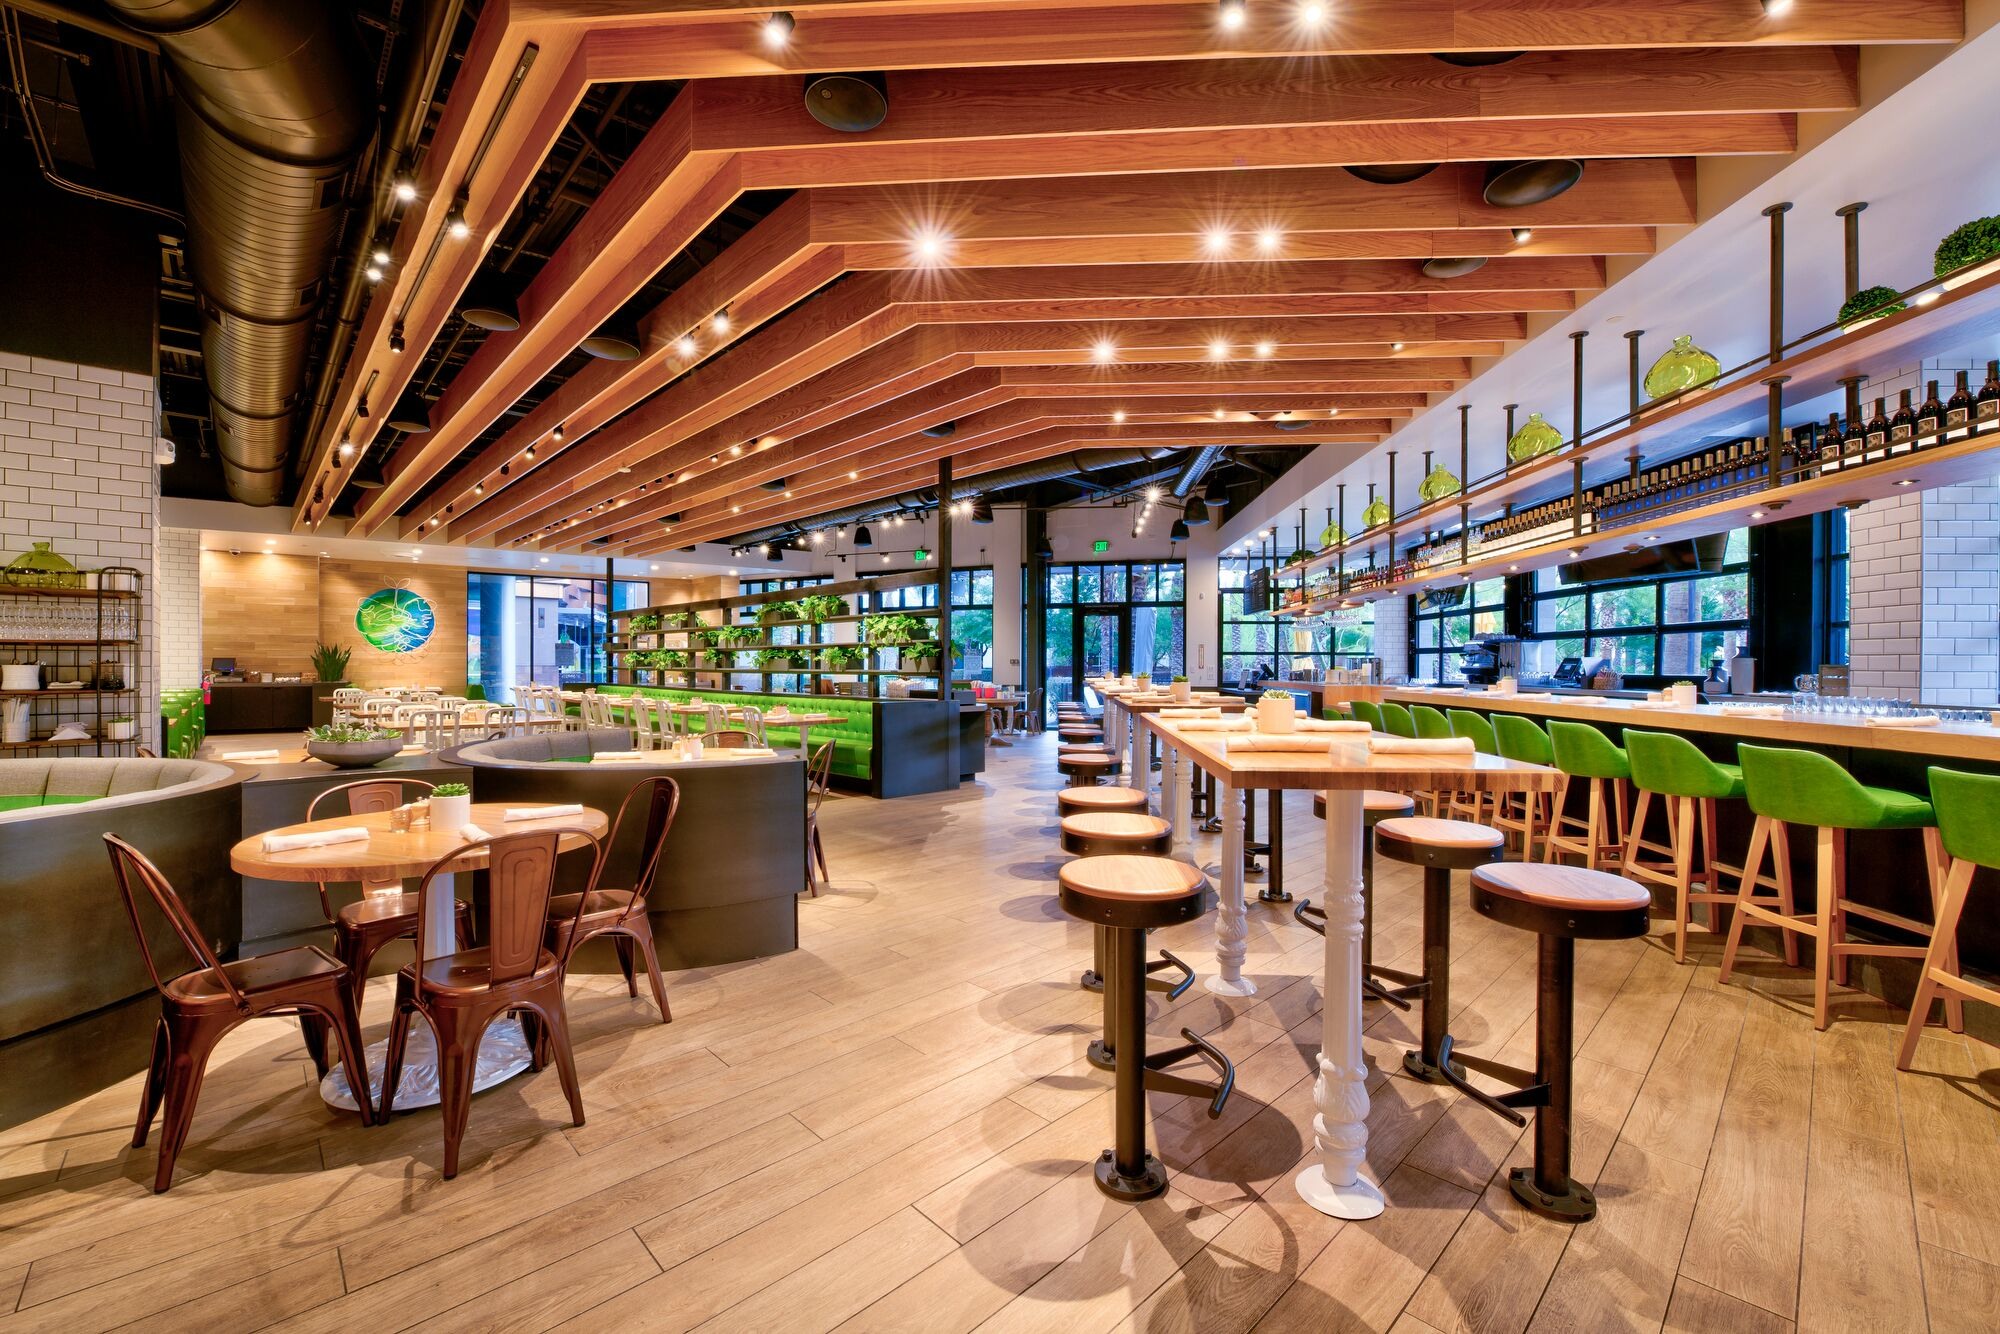 The bar, casual seating area and main dining room at True Food Kitchen in Downtown Summerlin.